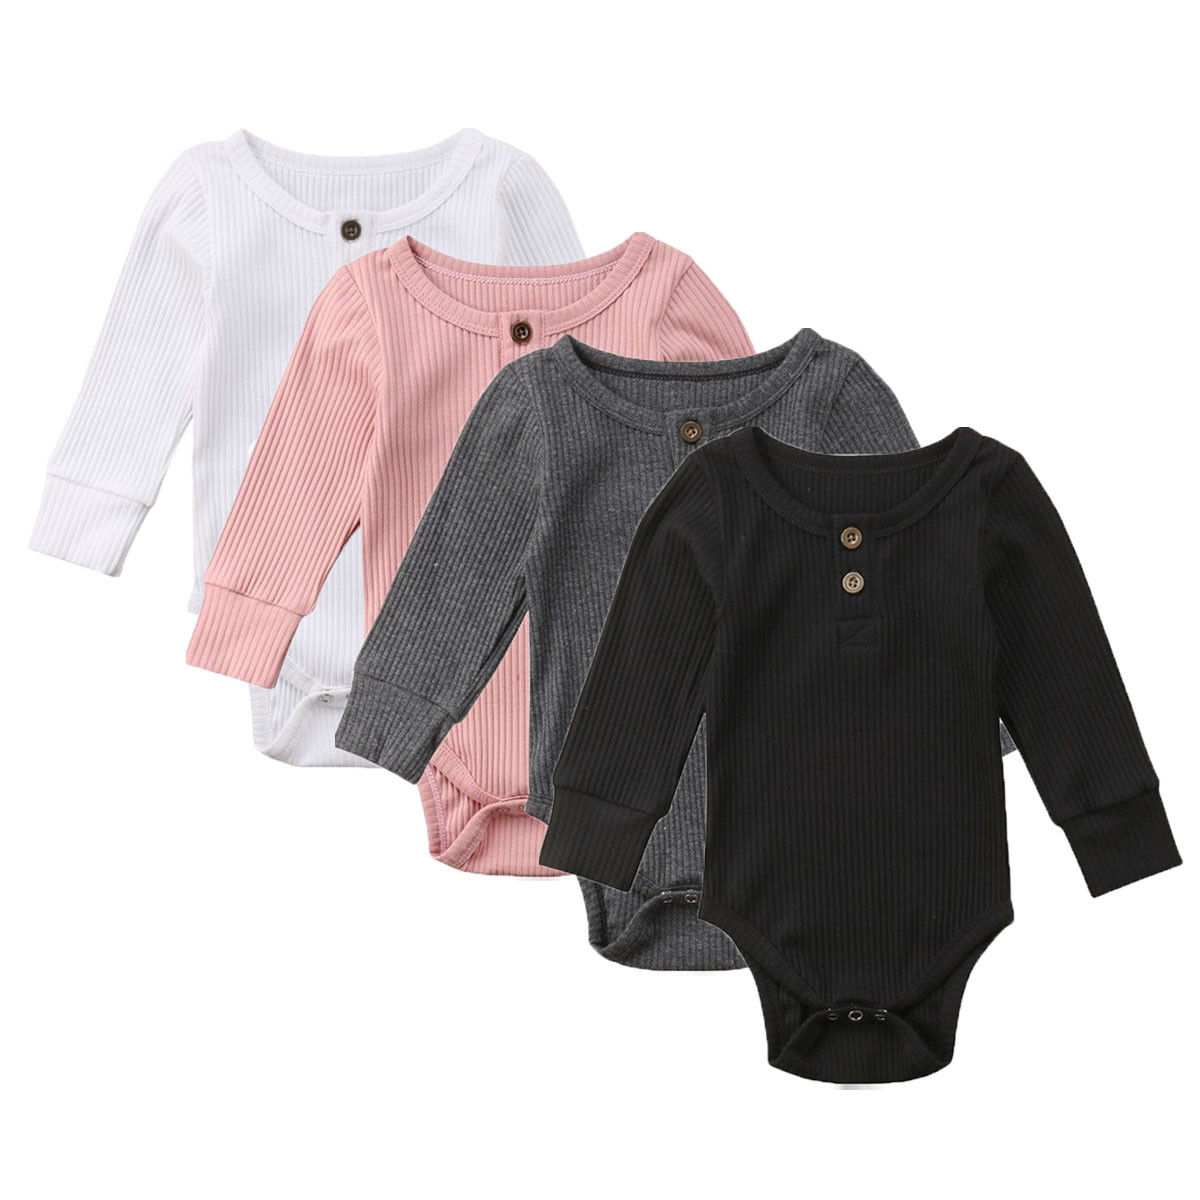 Newborn Infant Baby Boy Girls Clothes Body Baby   Romper   Multi-color Long Sleeve Button Jumpsuit Playsuit Outfits